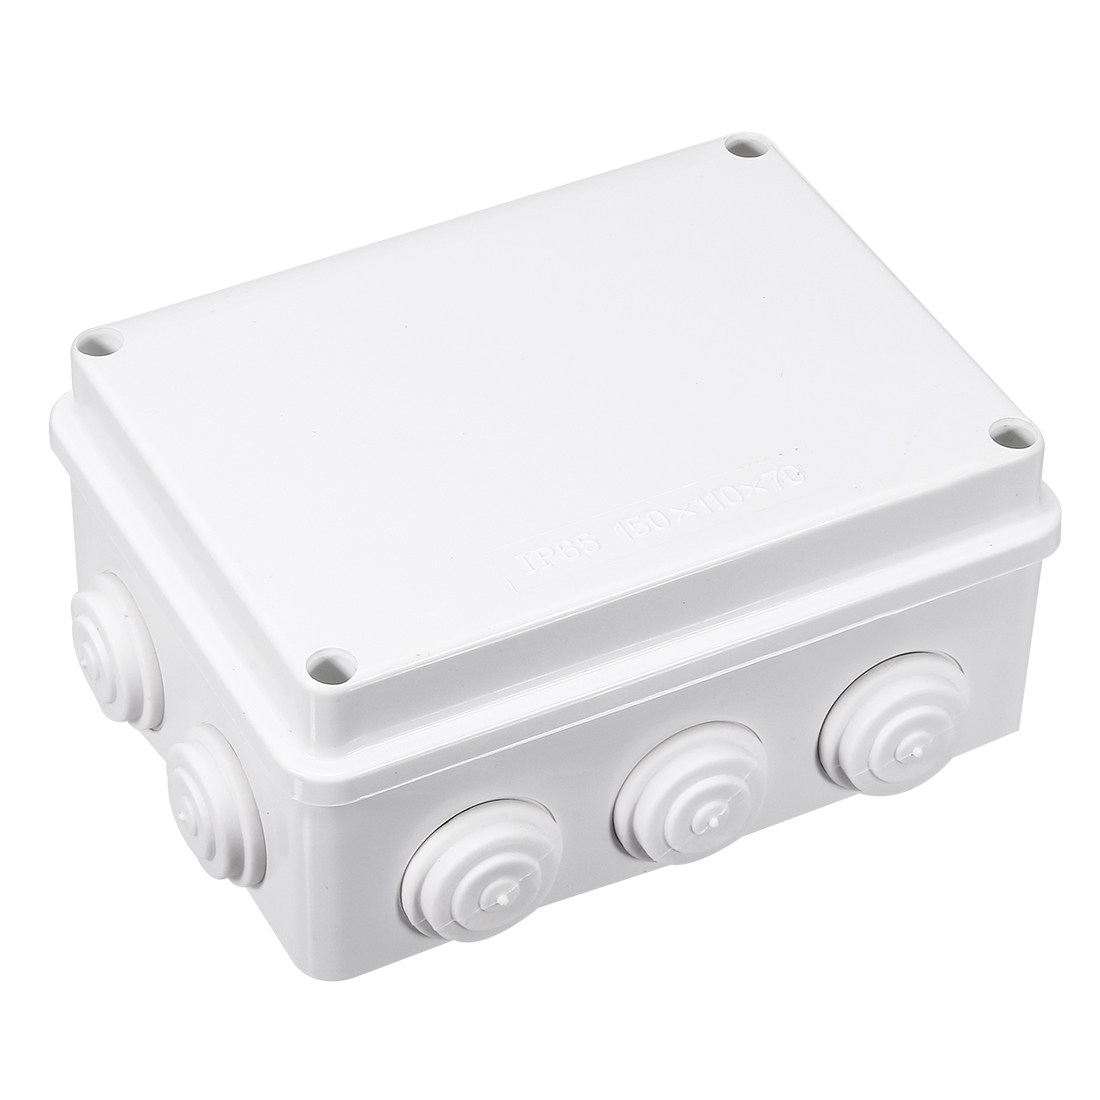 ABS 28mm Hole 10 Cable Entries Junction Box 150x110x70mm